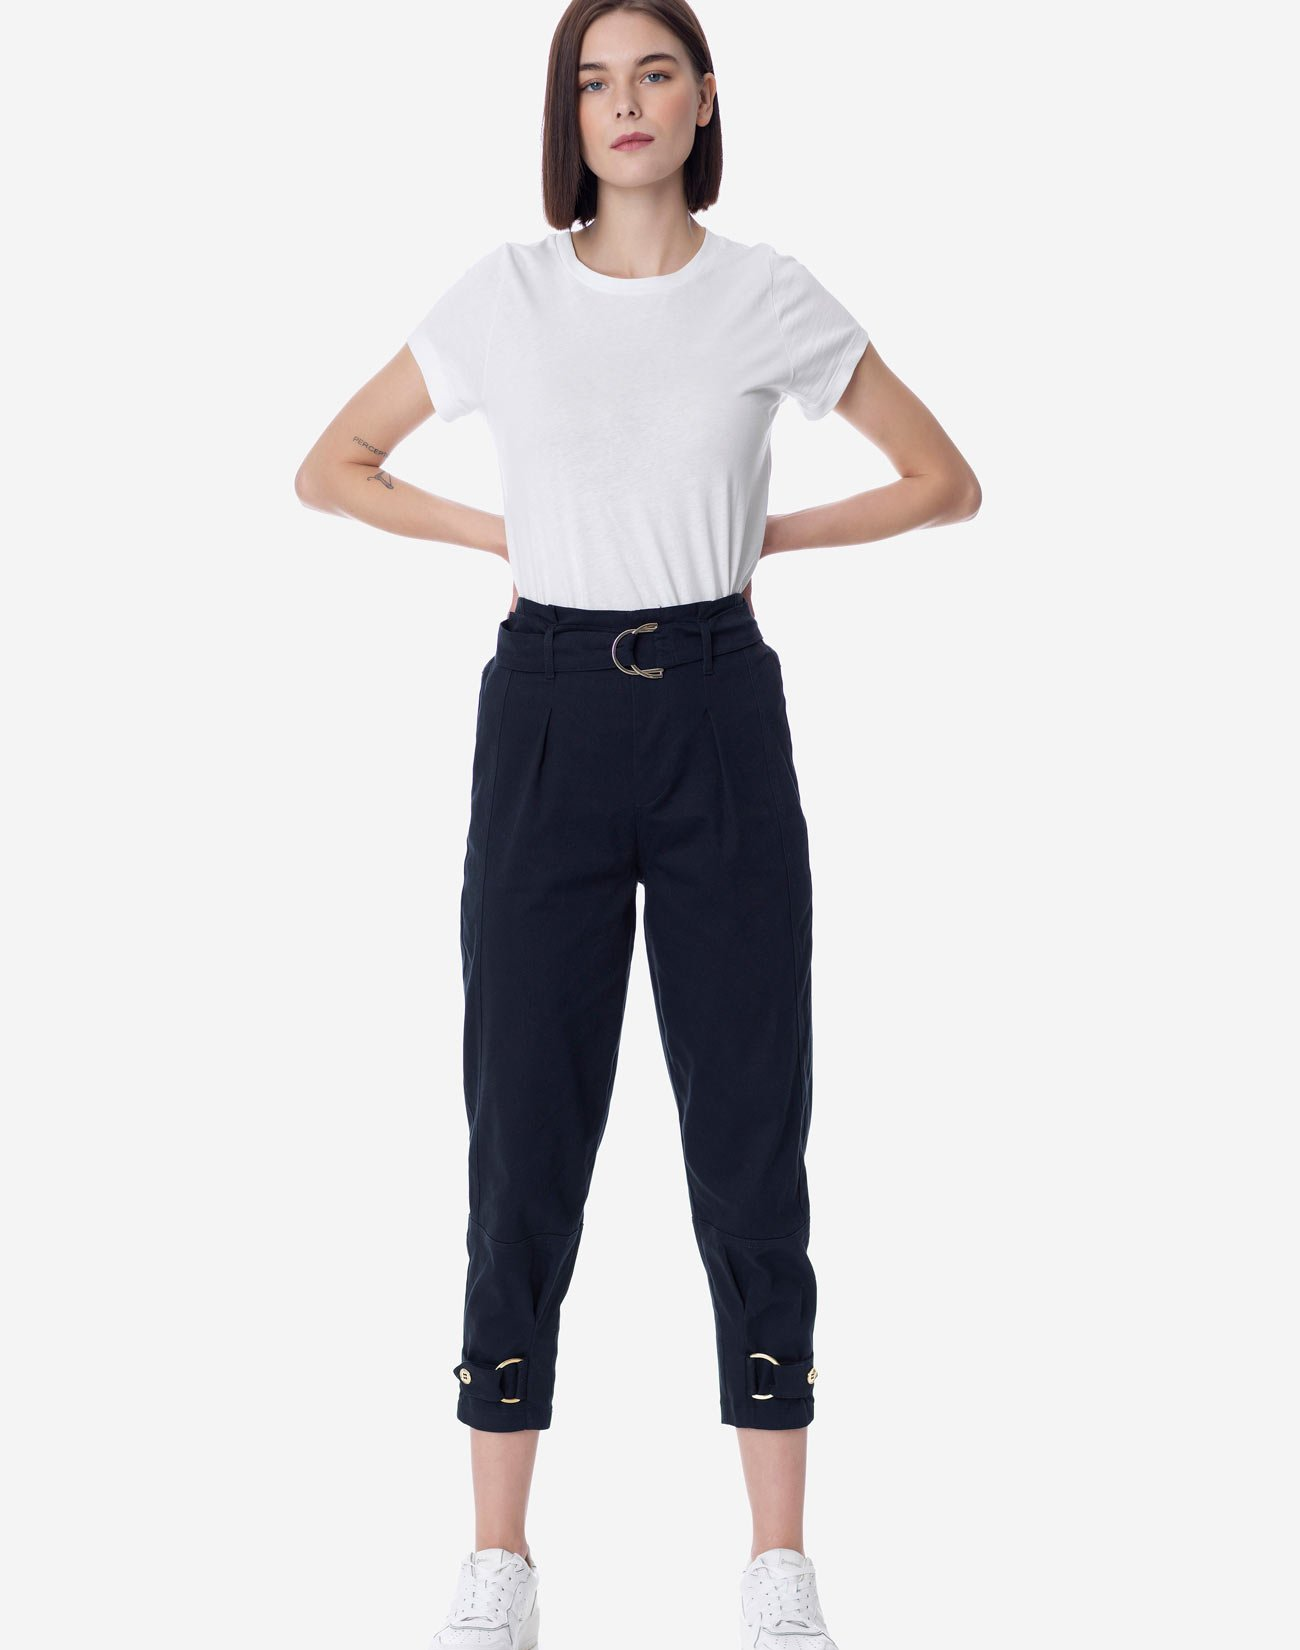 High waist pleated trousers